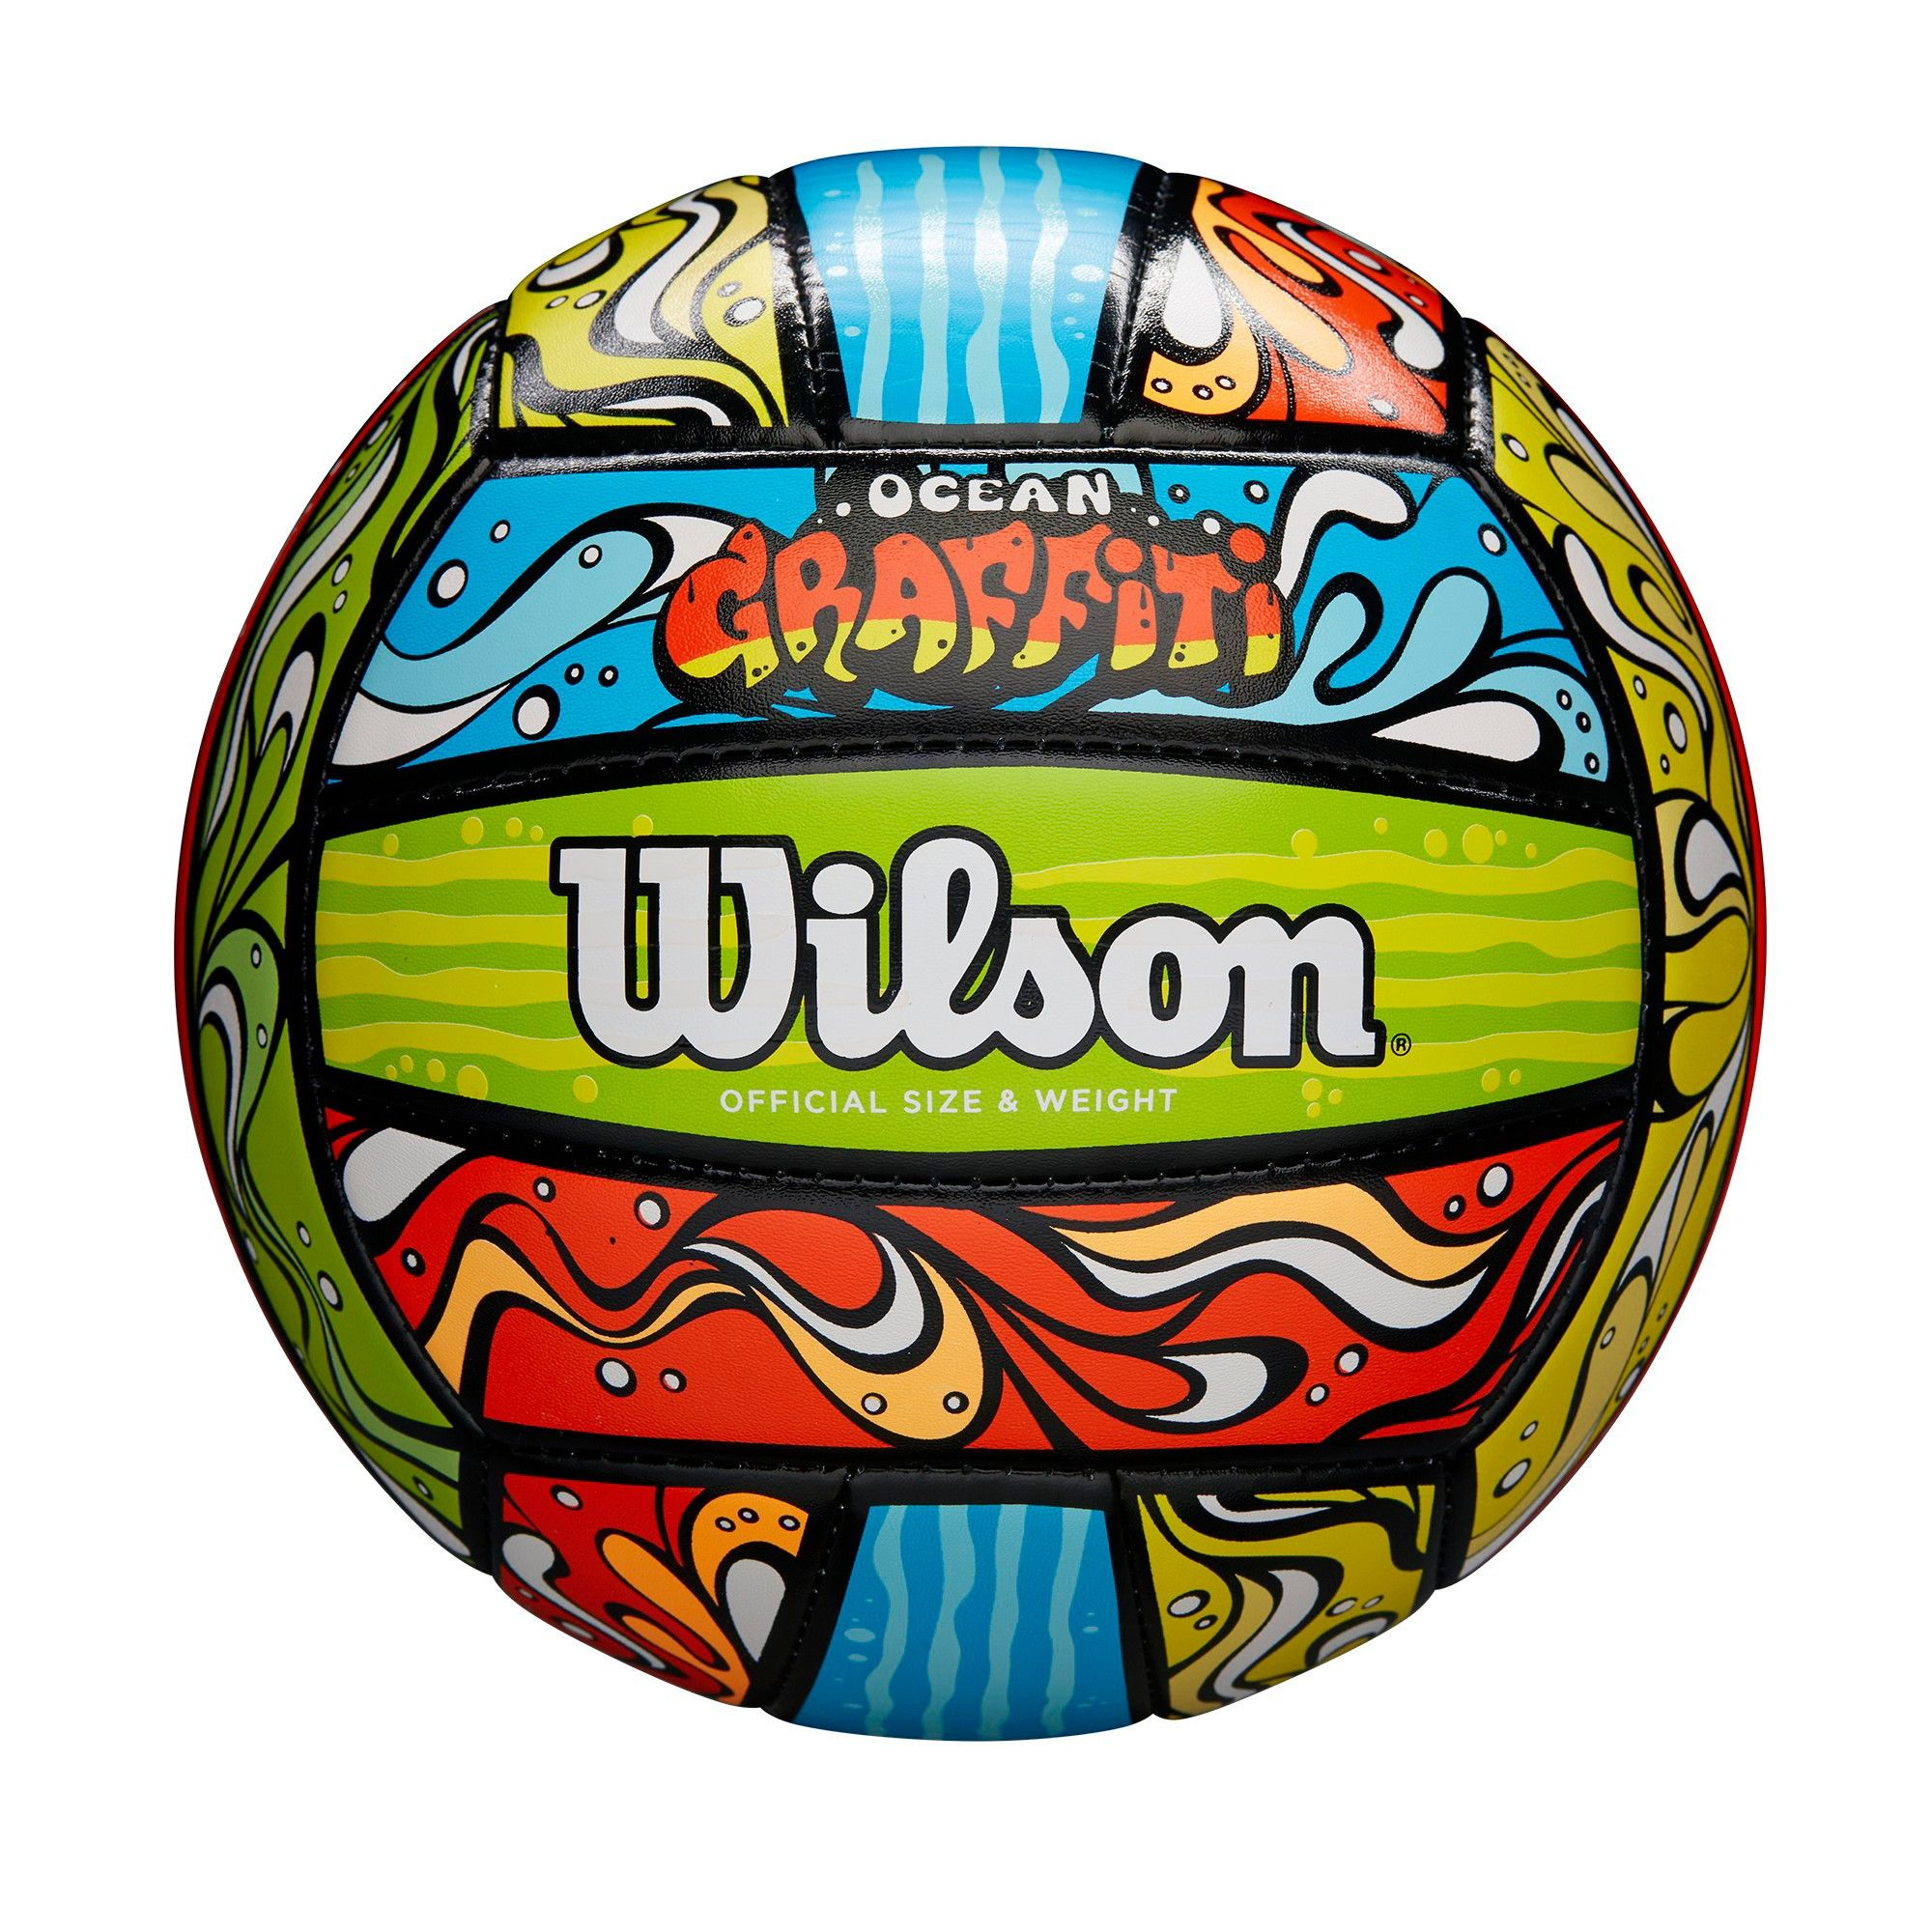 Wilson Volleyball Graffiti Ocean Multi Colored